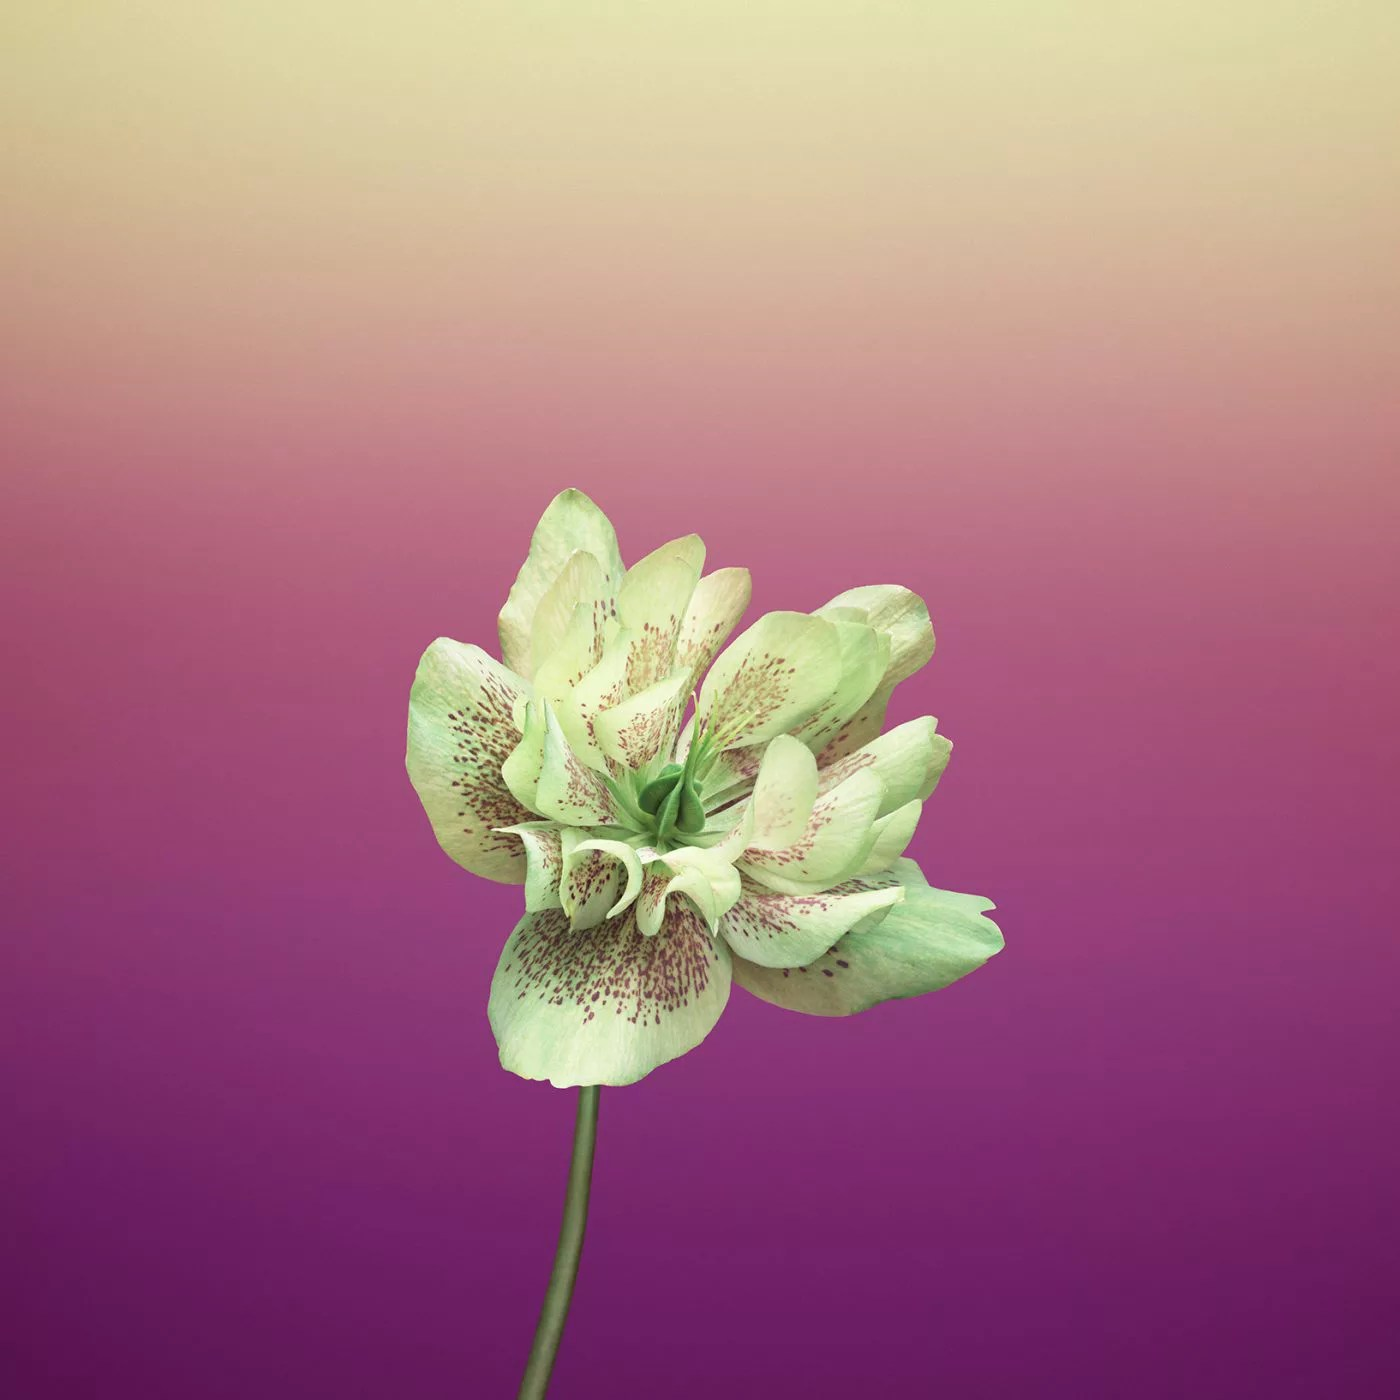 ios_11_gm_wallpaper_flower_helleborus.jpg